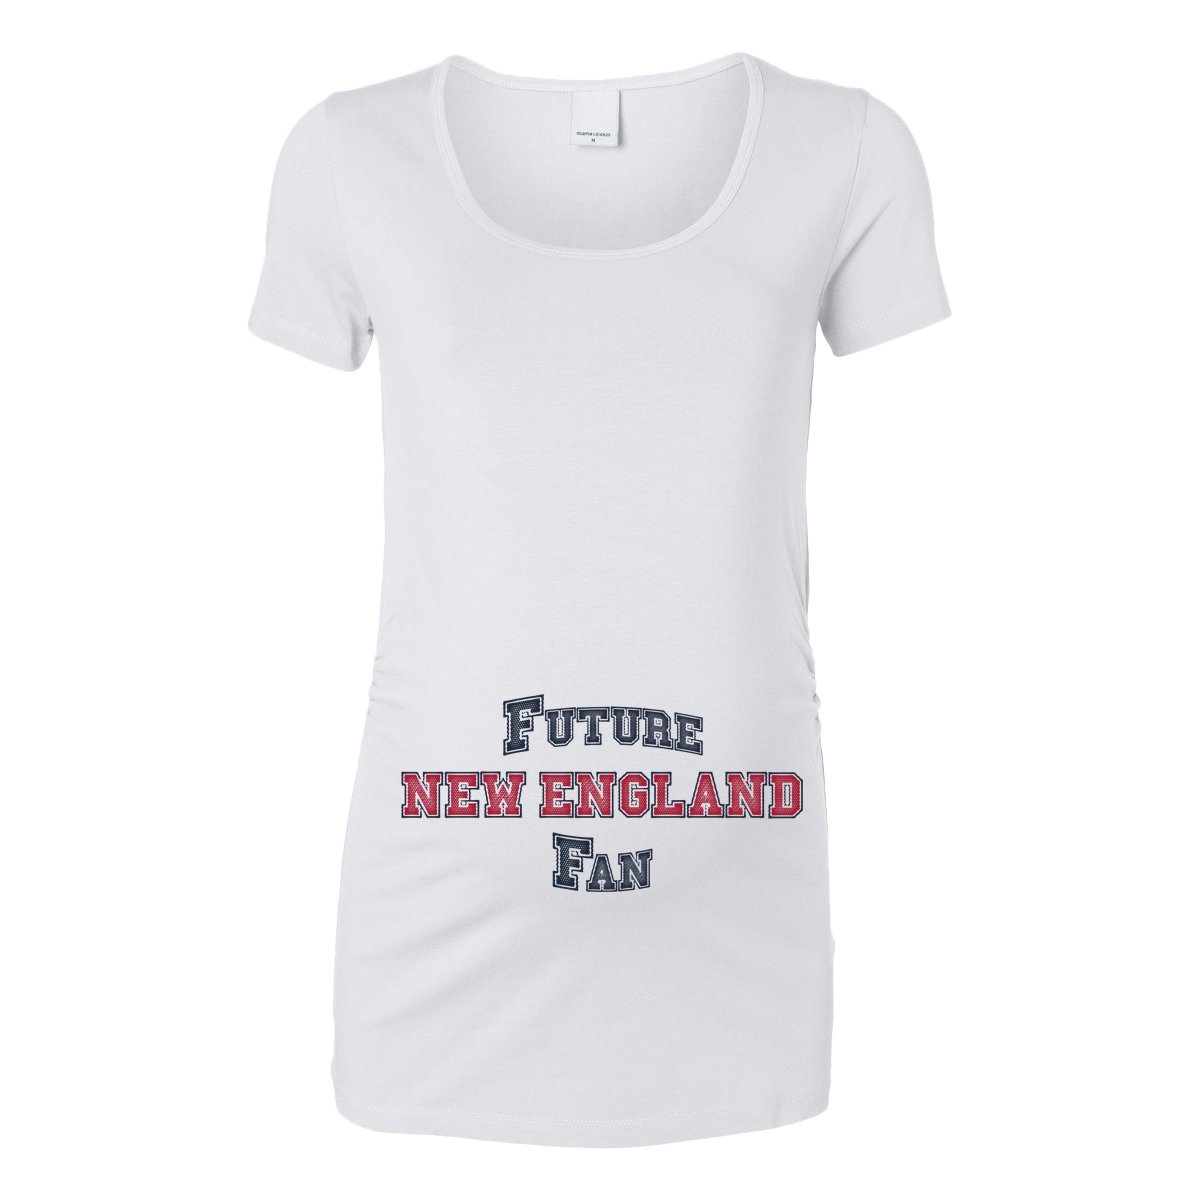 Future New England Fan Women's Maternity T-Shirt 101903